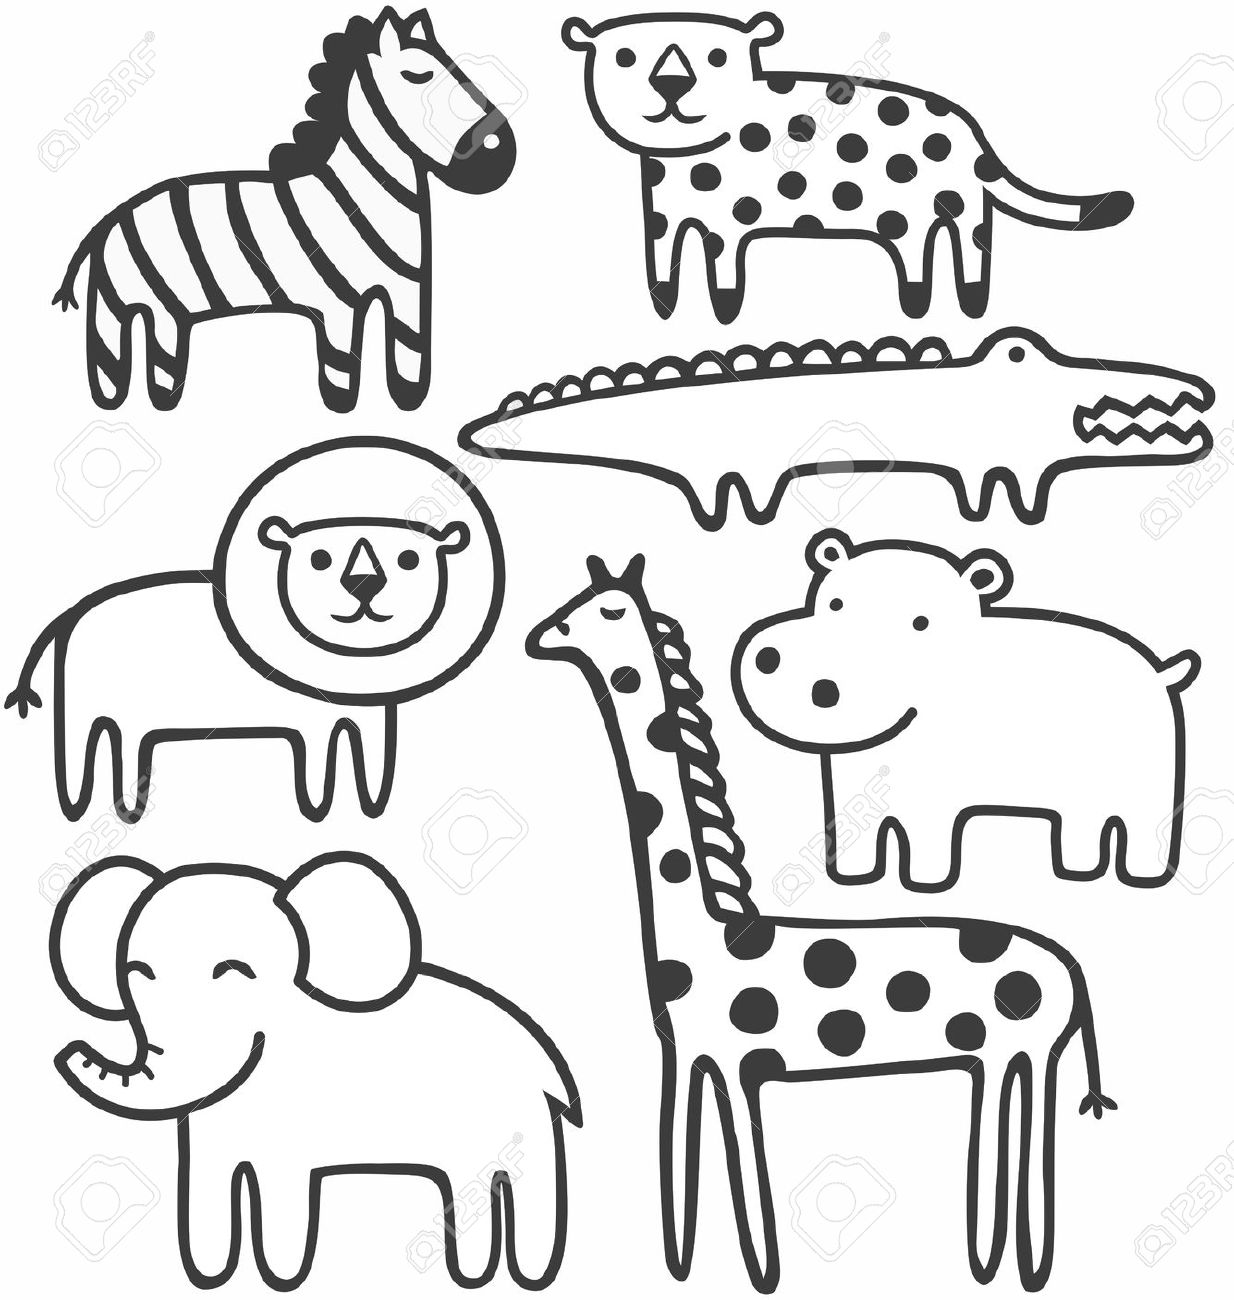 Zoo Animals Clipart Black And White 1 Clipart Station